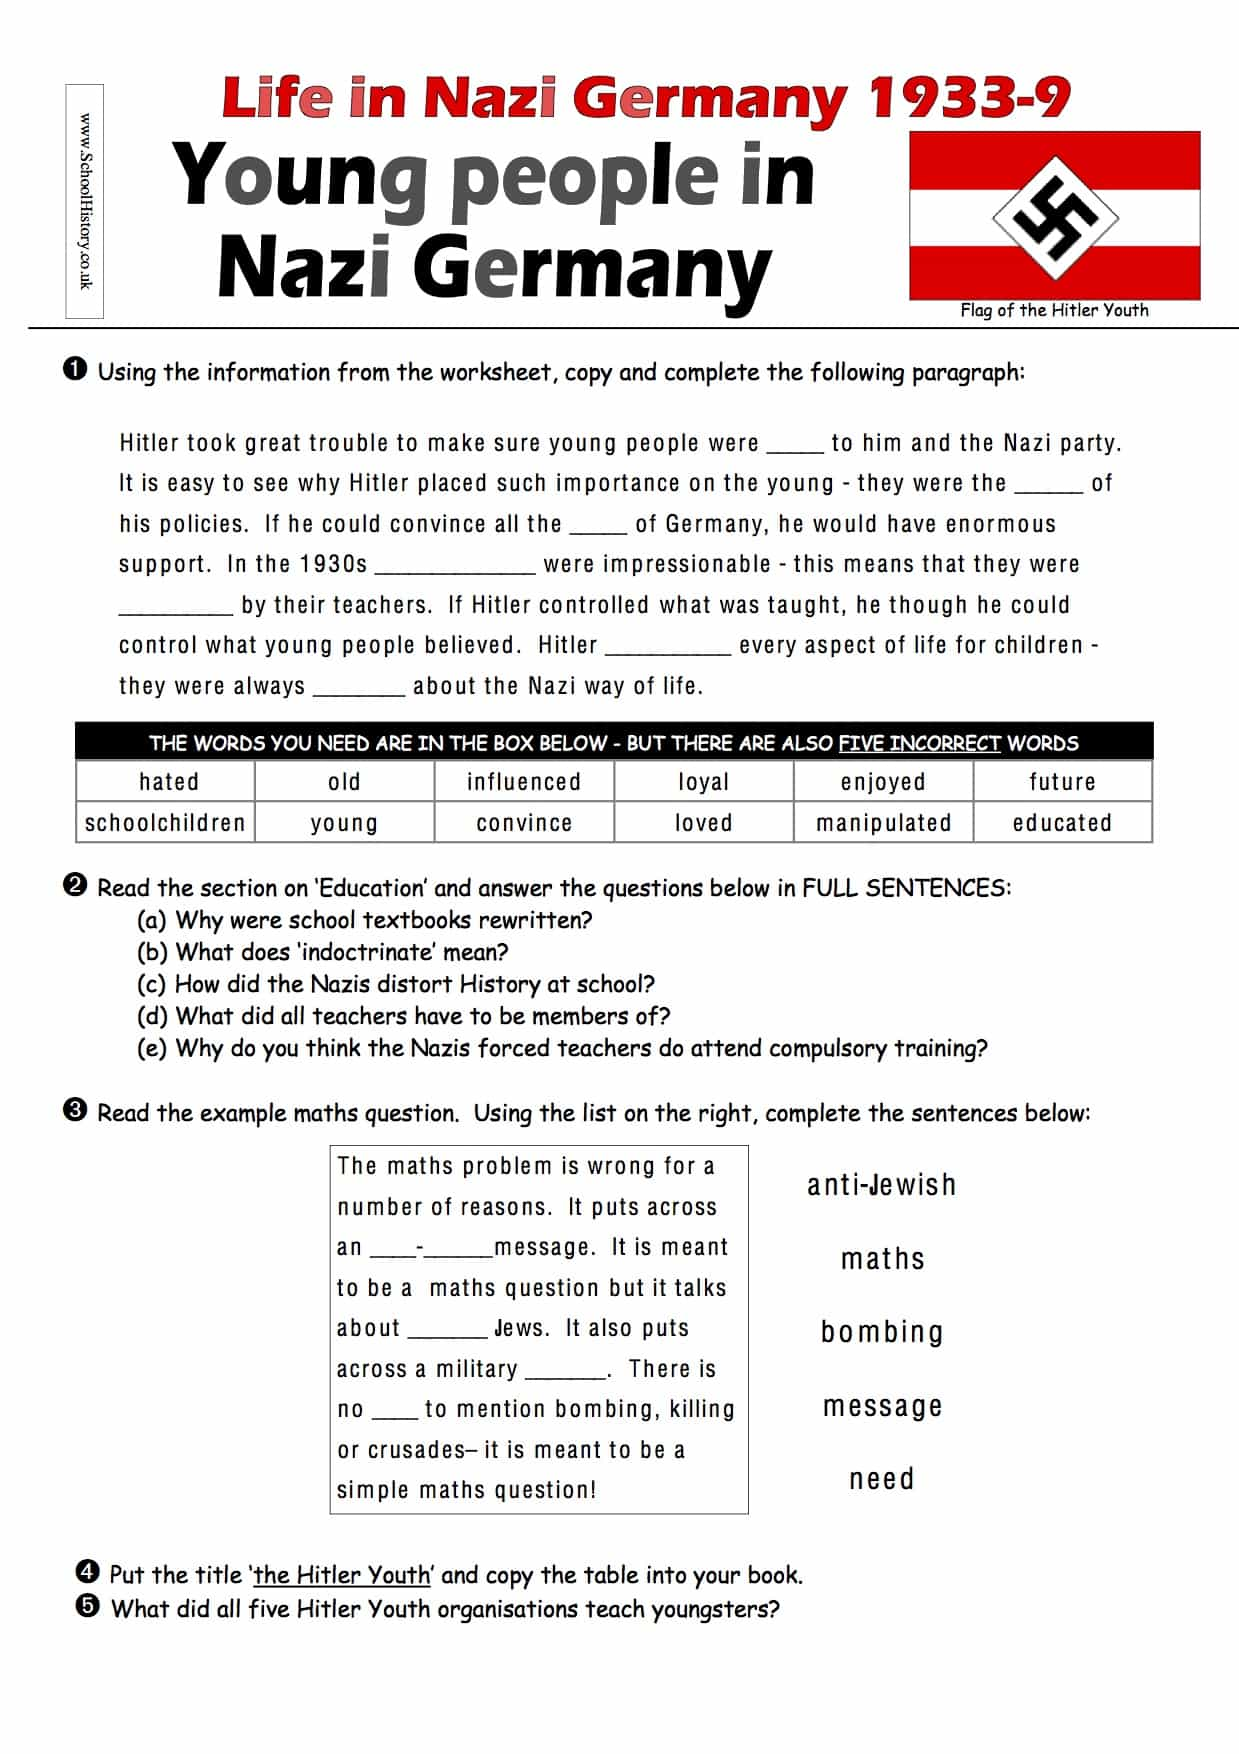 Life In Nazi Germany Young People Assessment Lower